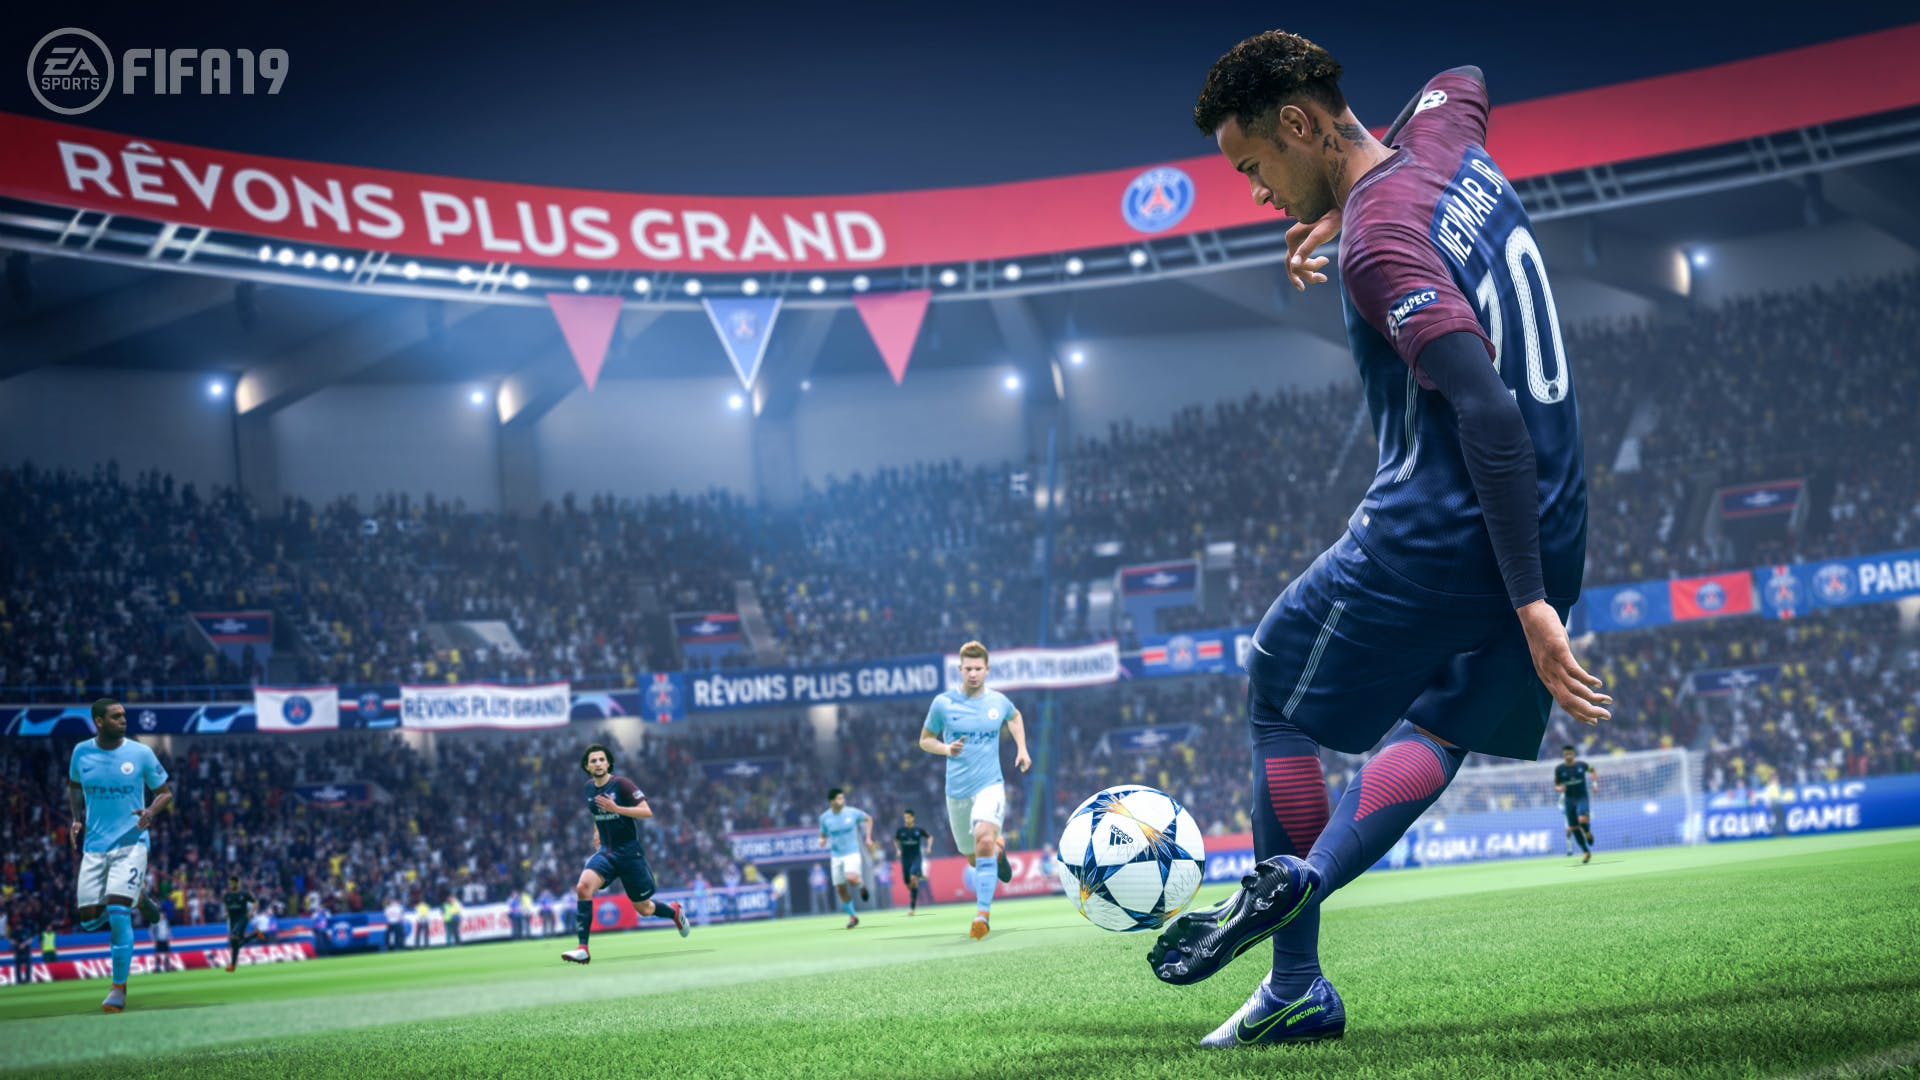 A screenshot of FIFA 19